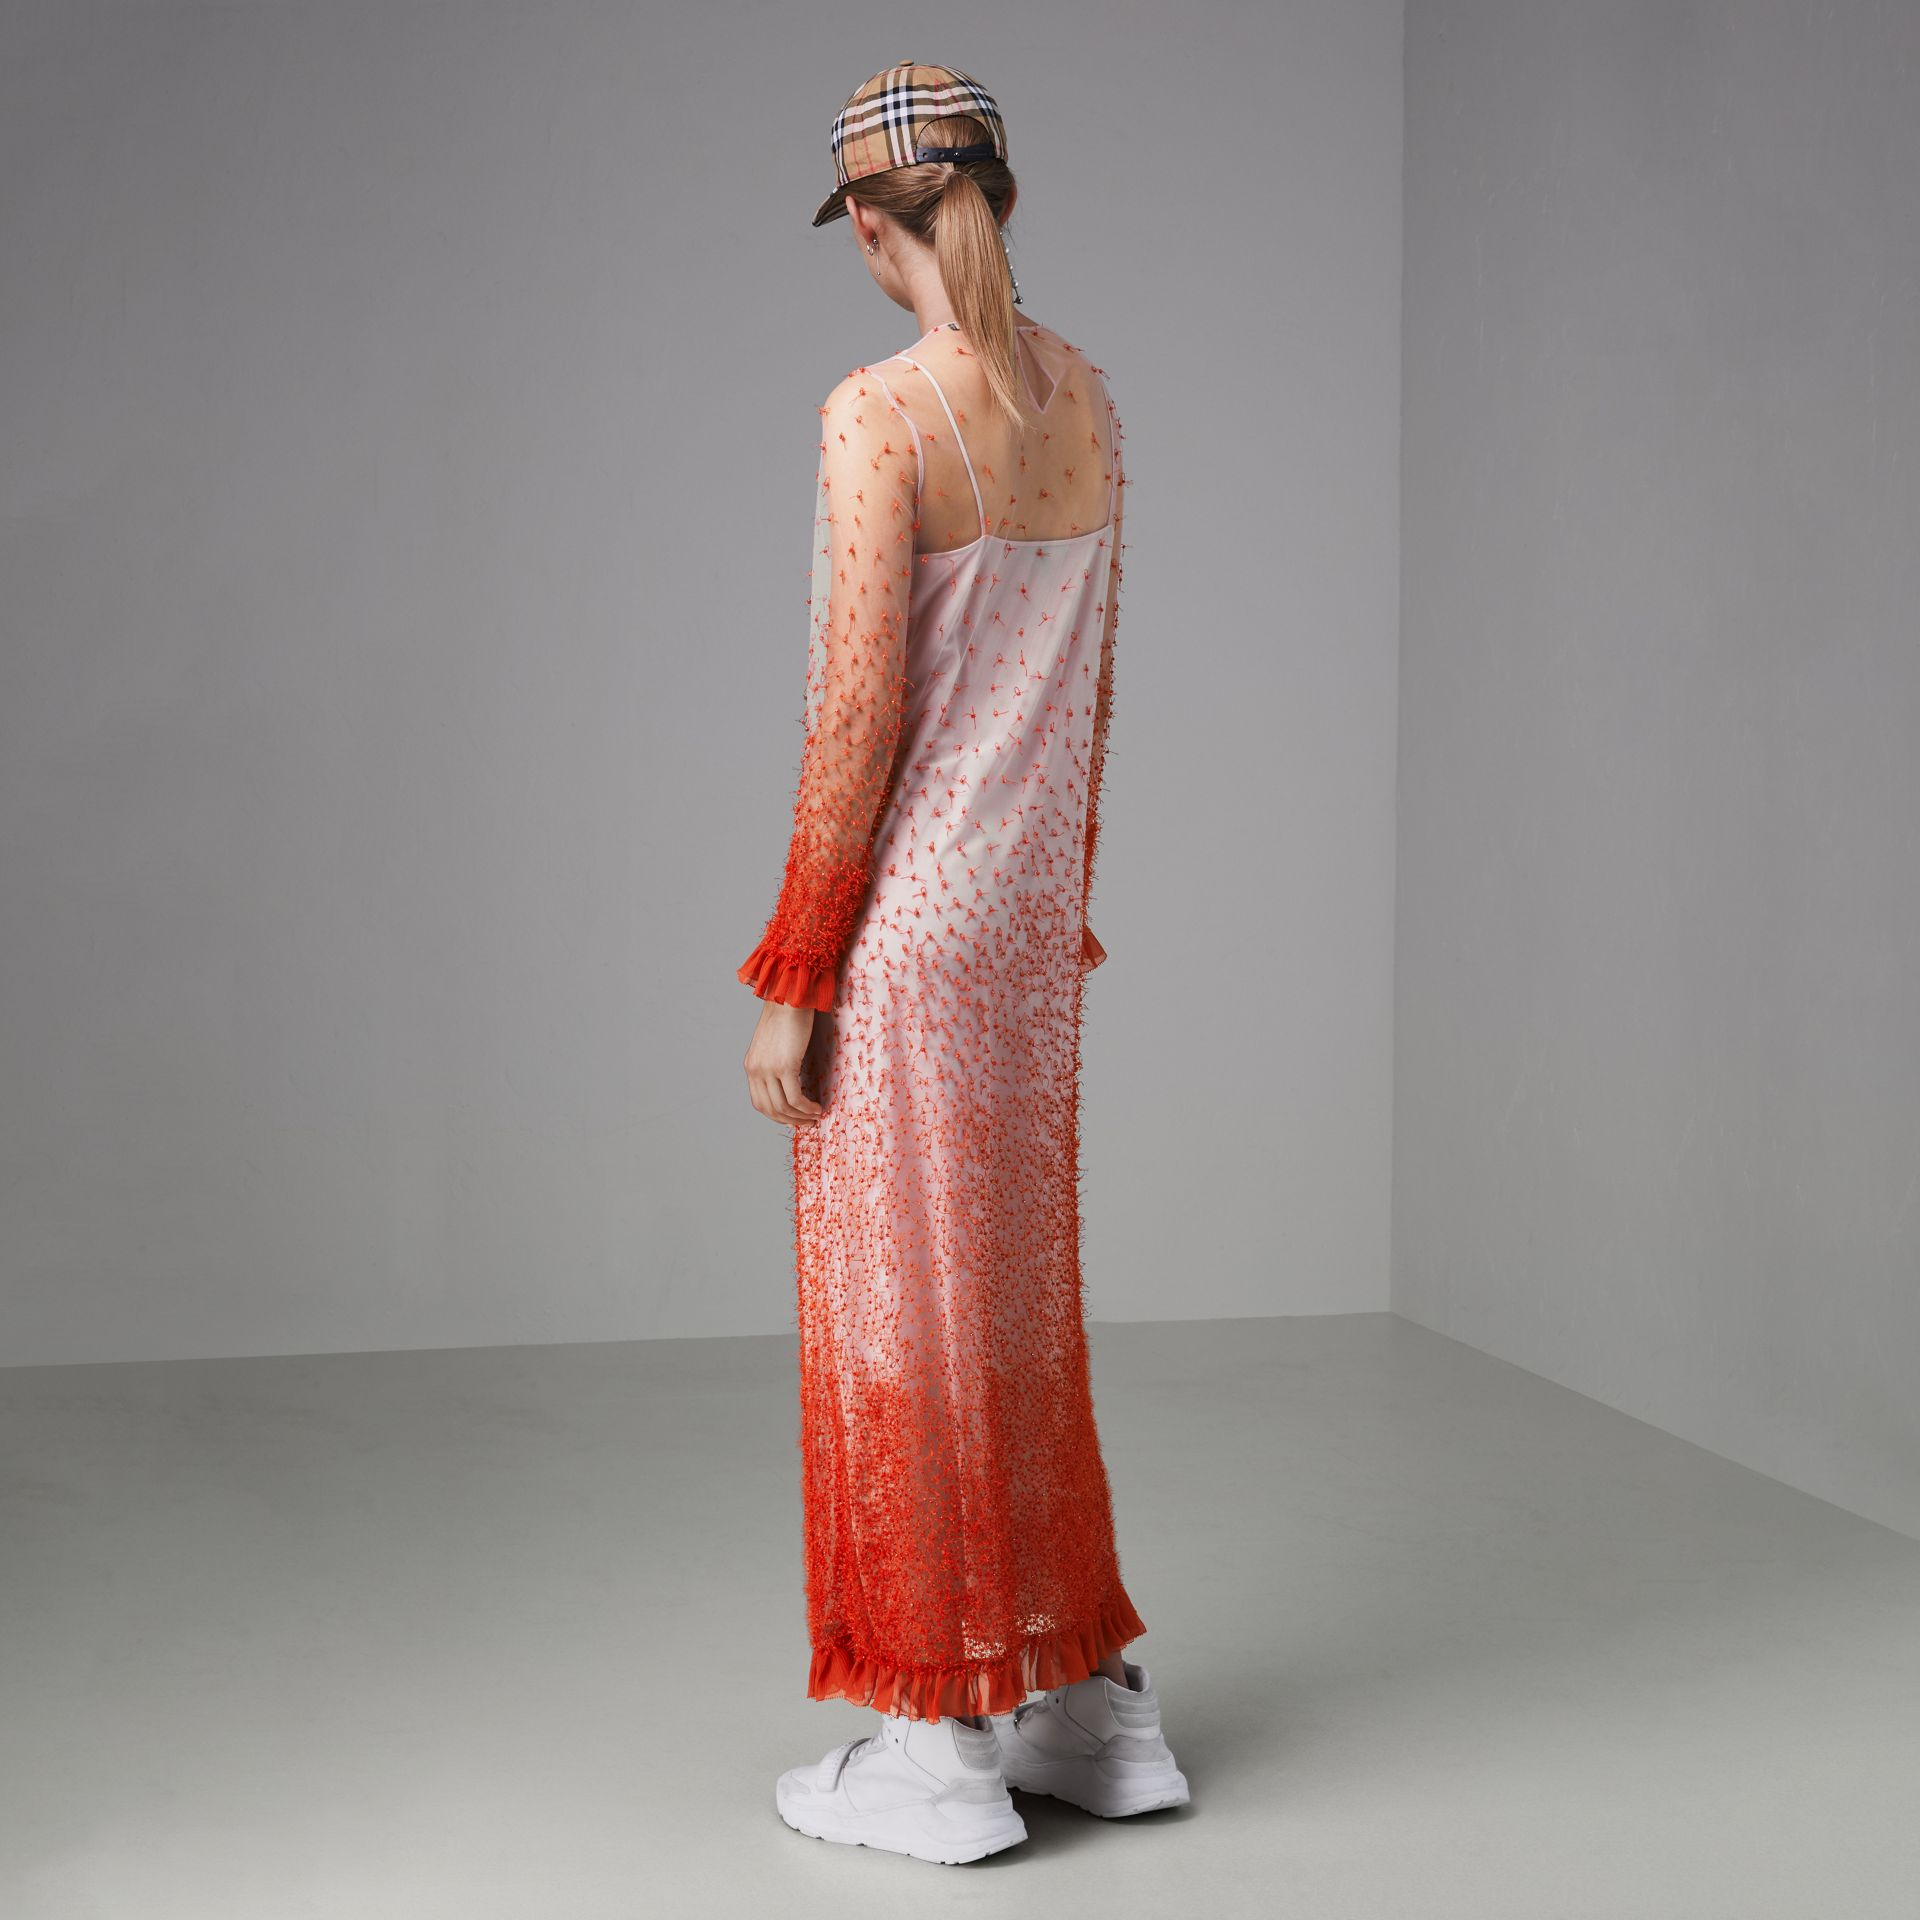 Dégradé Hand-beaded Crepon Dress in Coral - Women | Burberry Singapore - gallery image 2